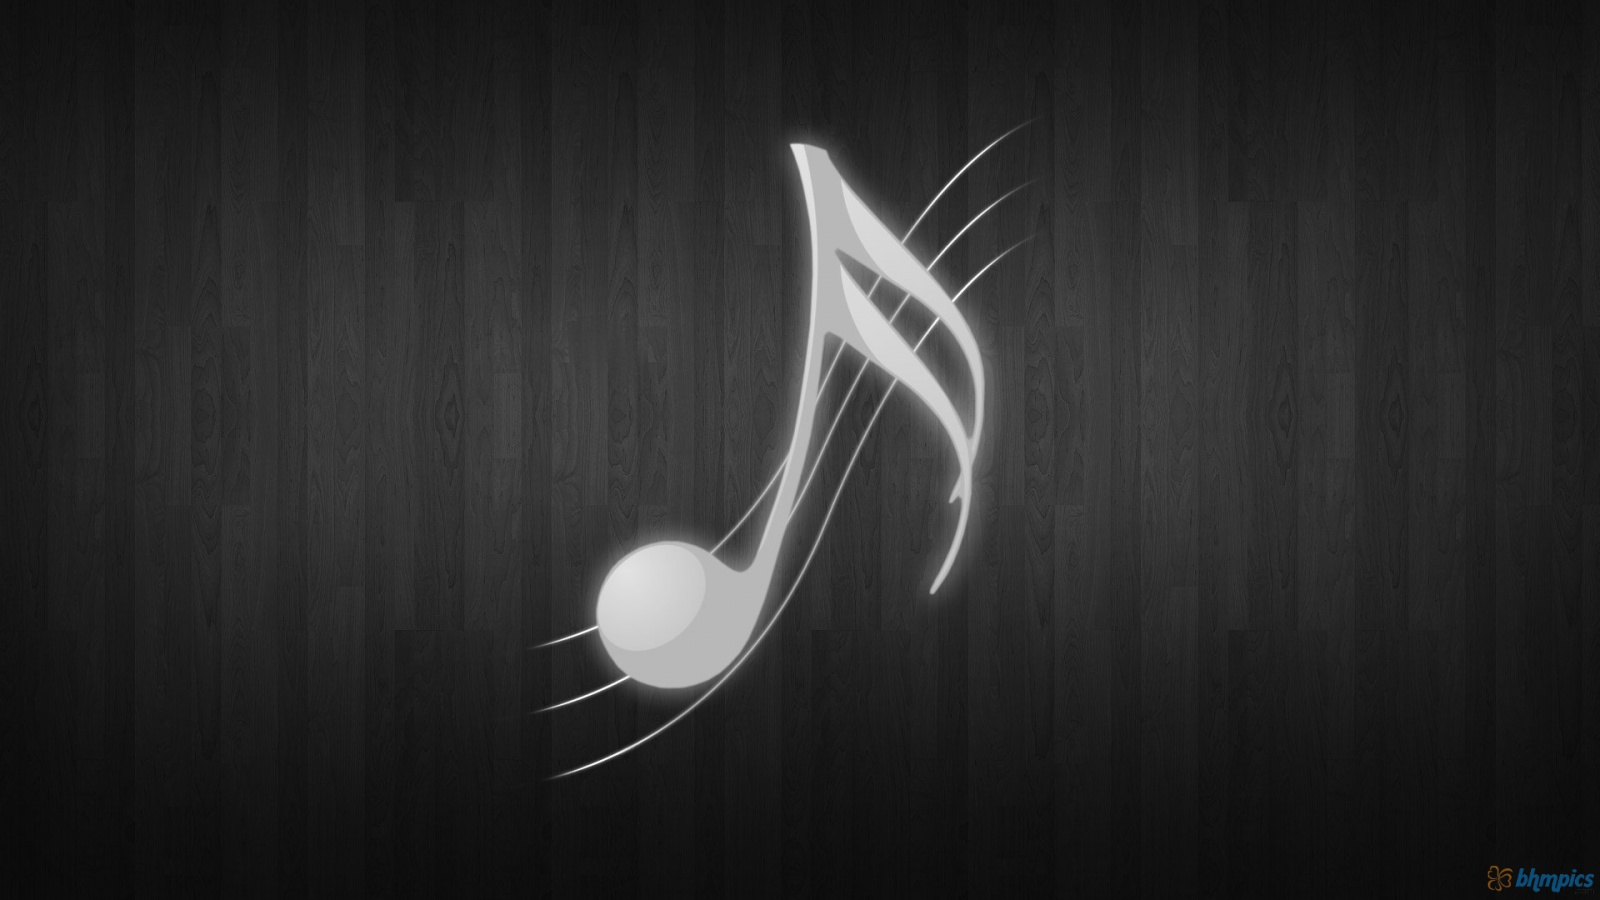 Music Notes HD Wallpapers | Movie HD Wallpapers